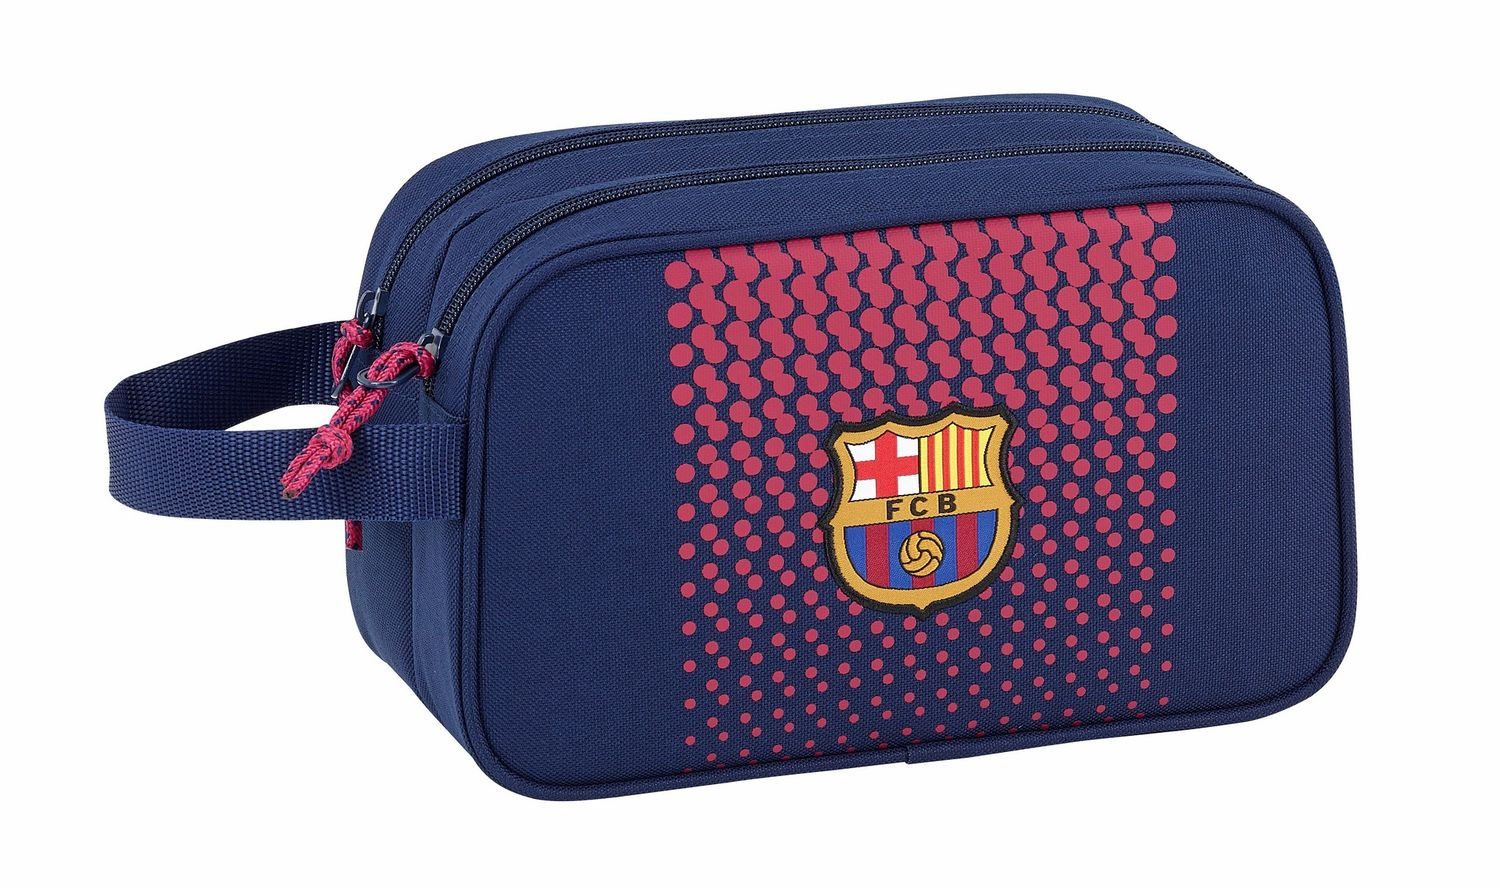 OFFICIAL F.C. Barcelona Corporate Wash Travel Bag 2 Zips 26 cm